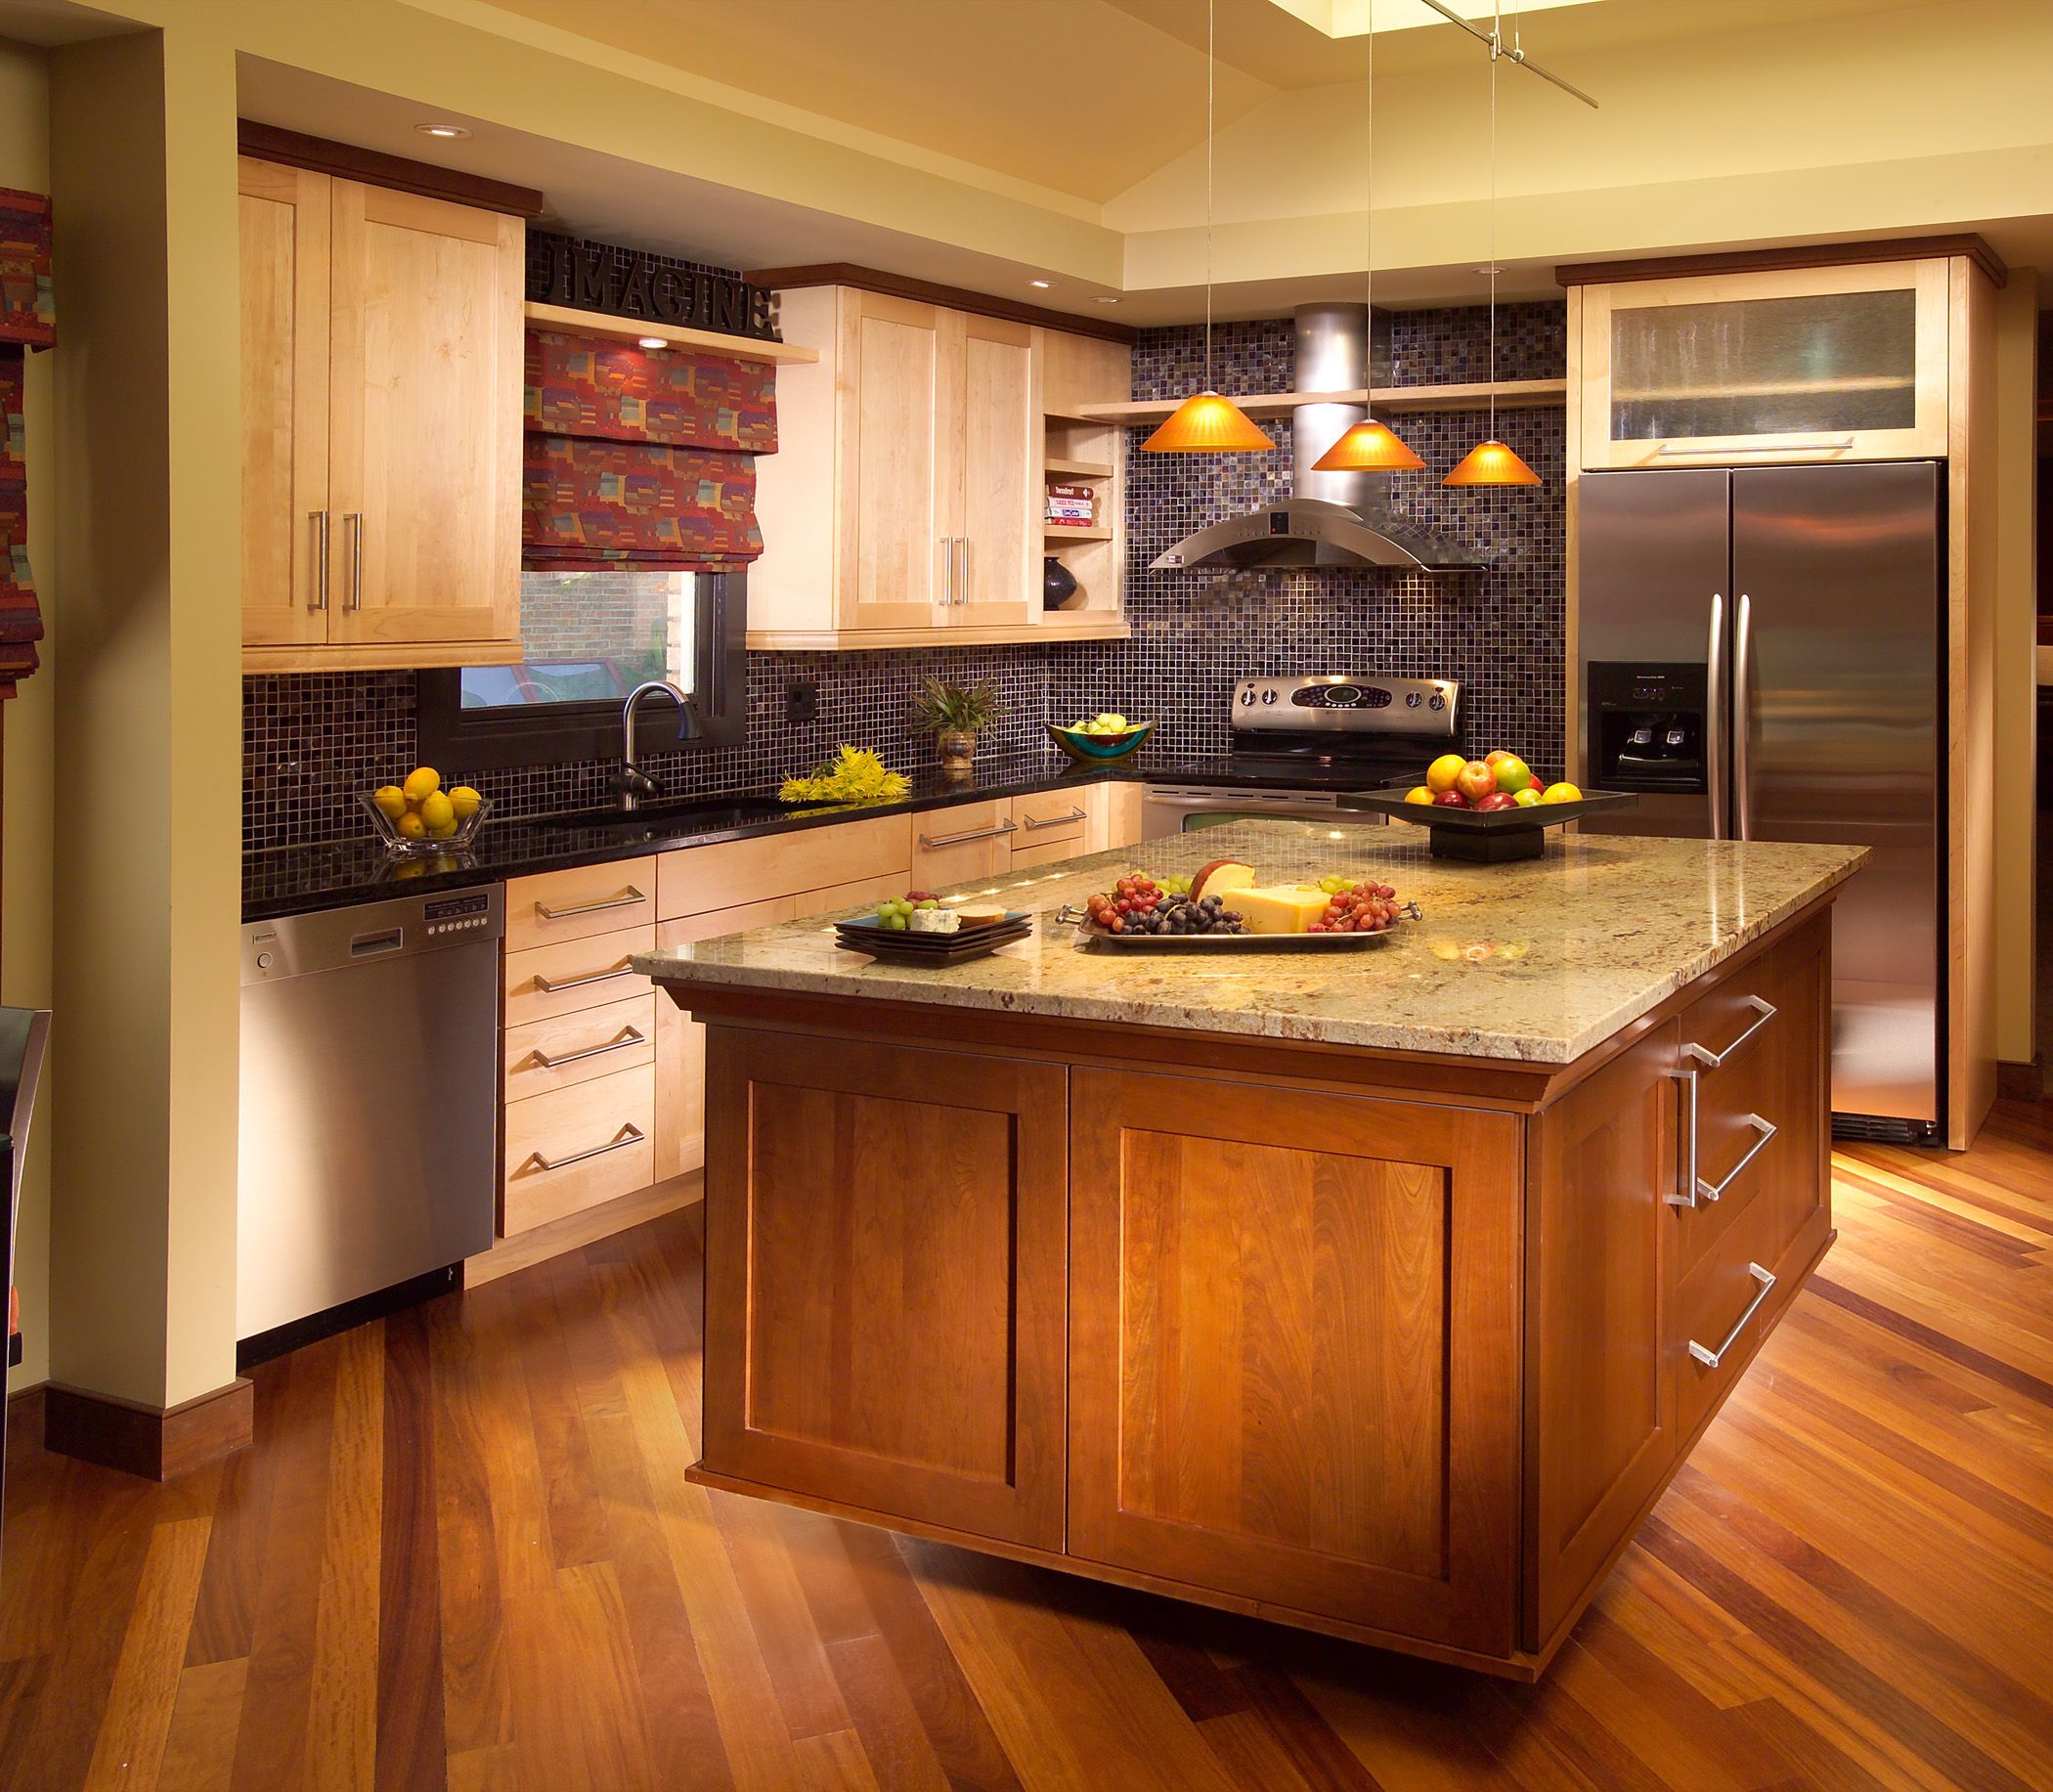 Wood Types For Kitchen Cabinets: Custom Wood Products #kitchenisland #cabinets